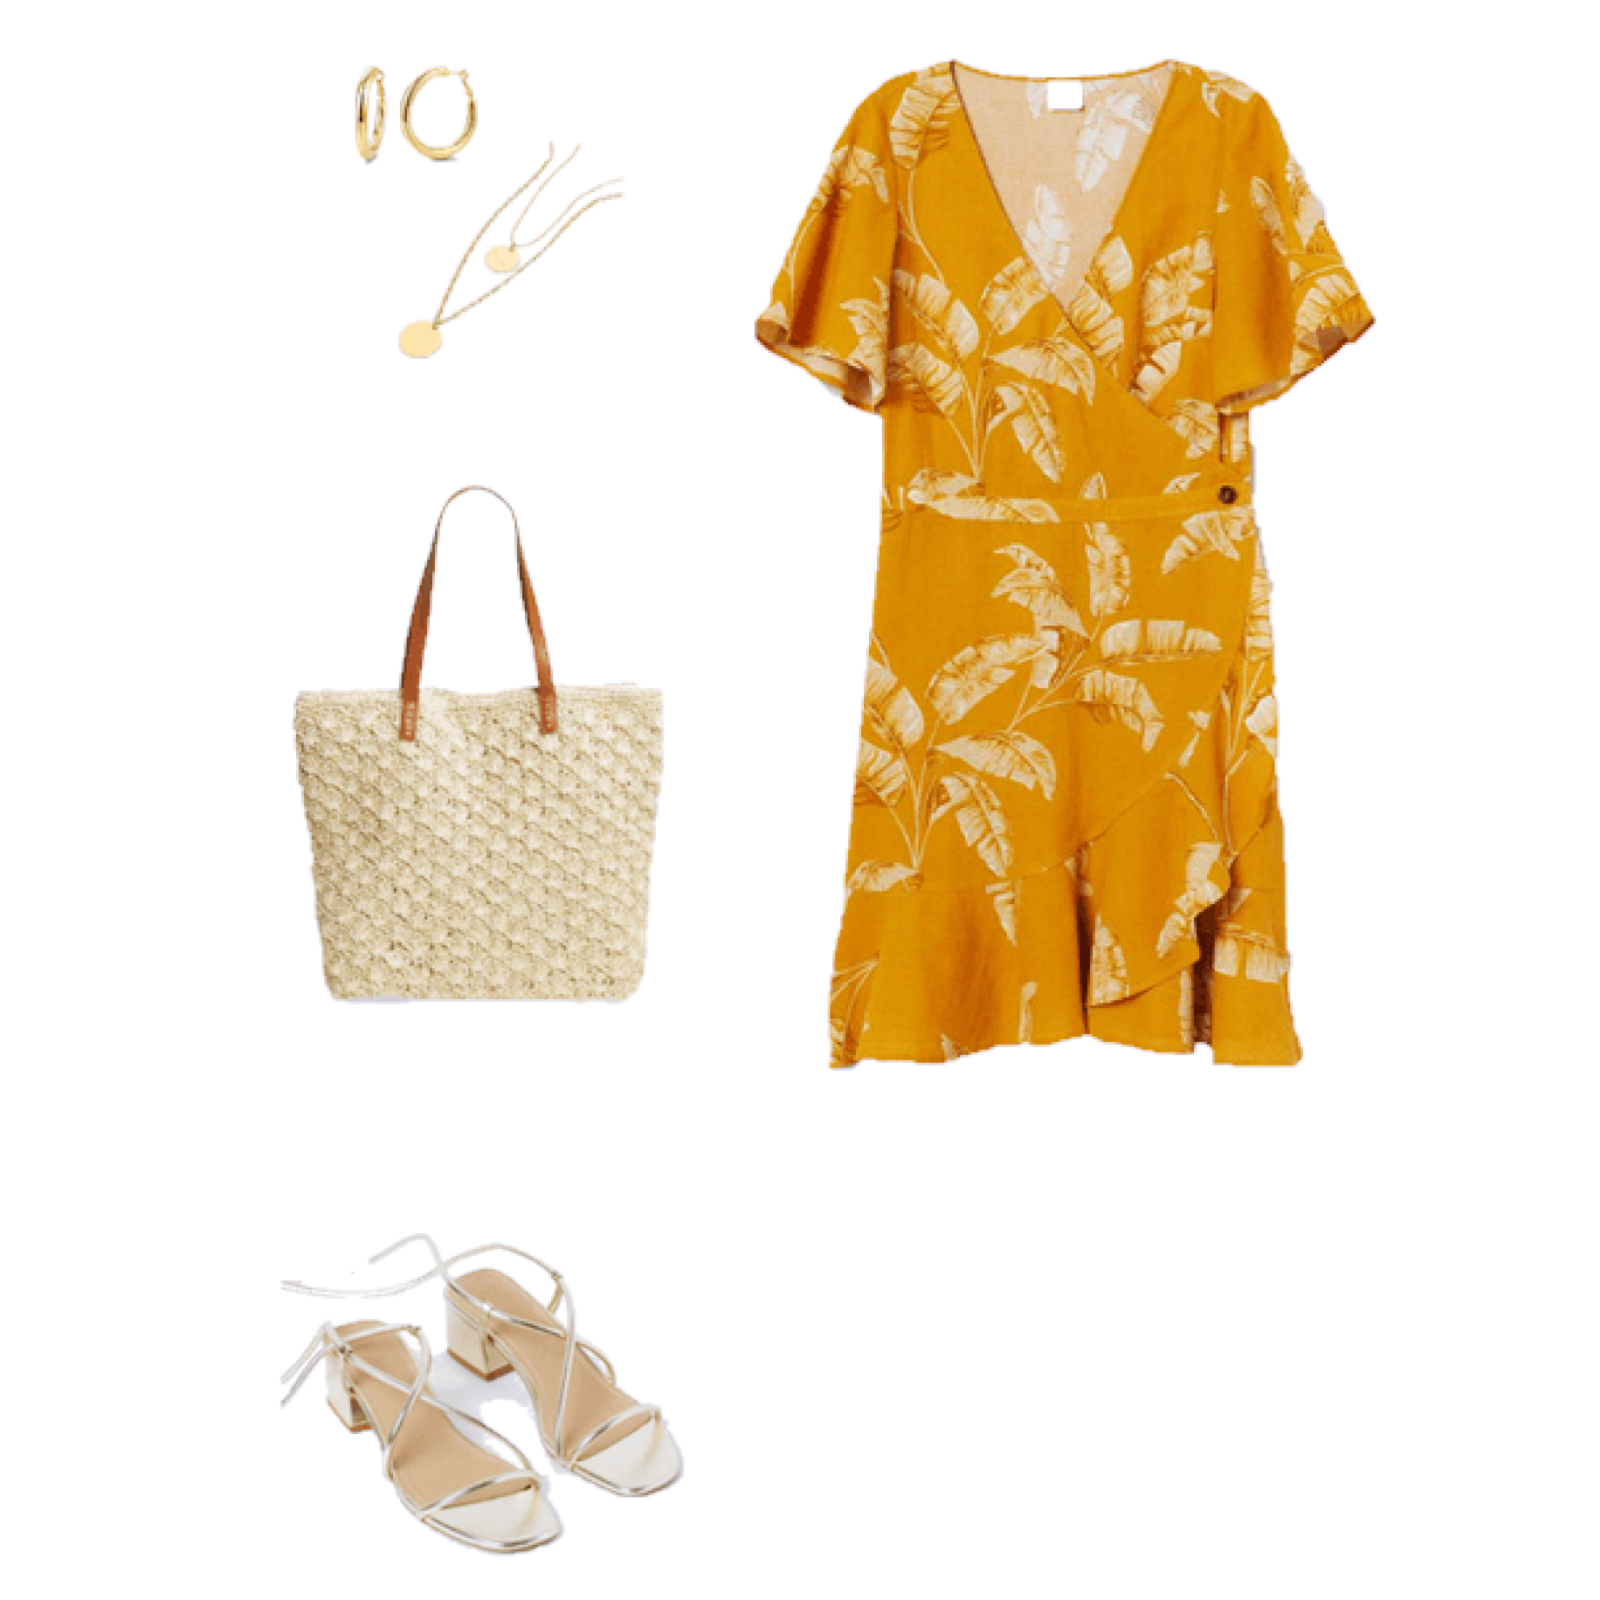 Outfit of the Day: Yellow and Gold